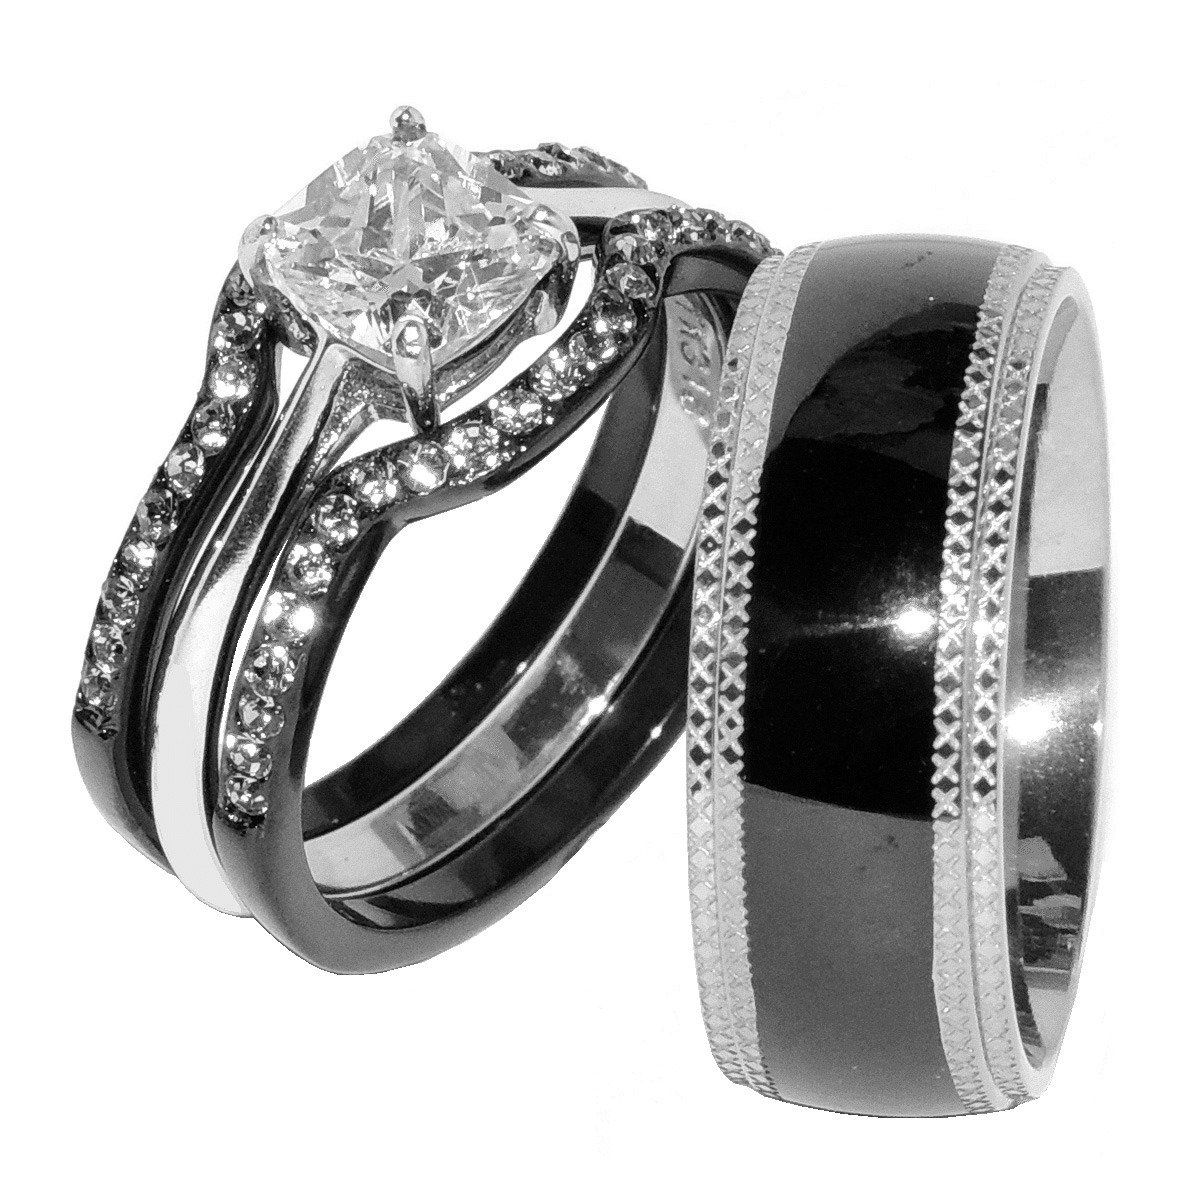 His hers 4 pcs black ip stainless steel cz wedding ring for Wedding bands and engagement ring sets